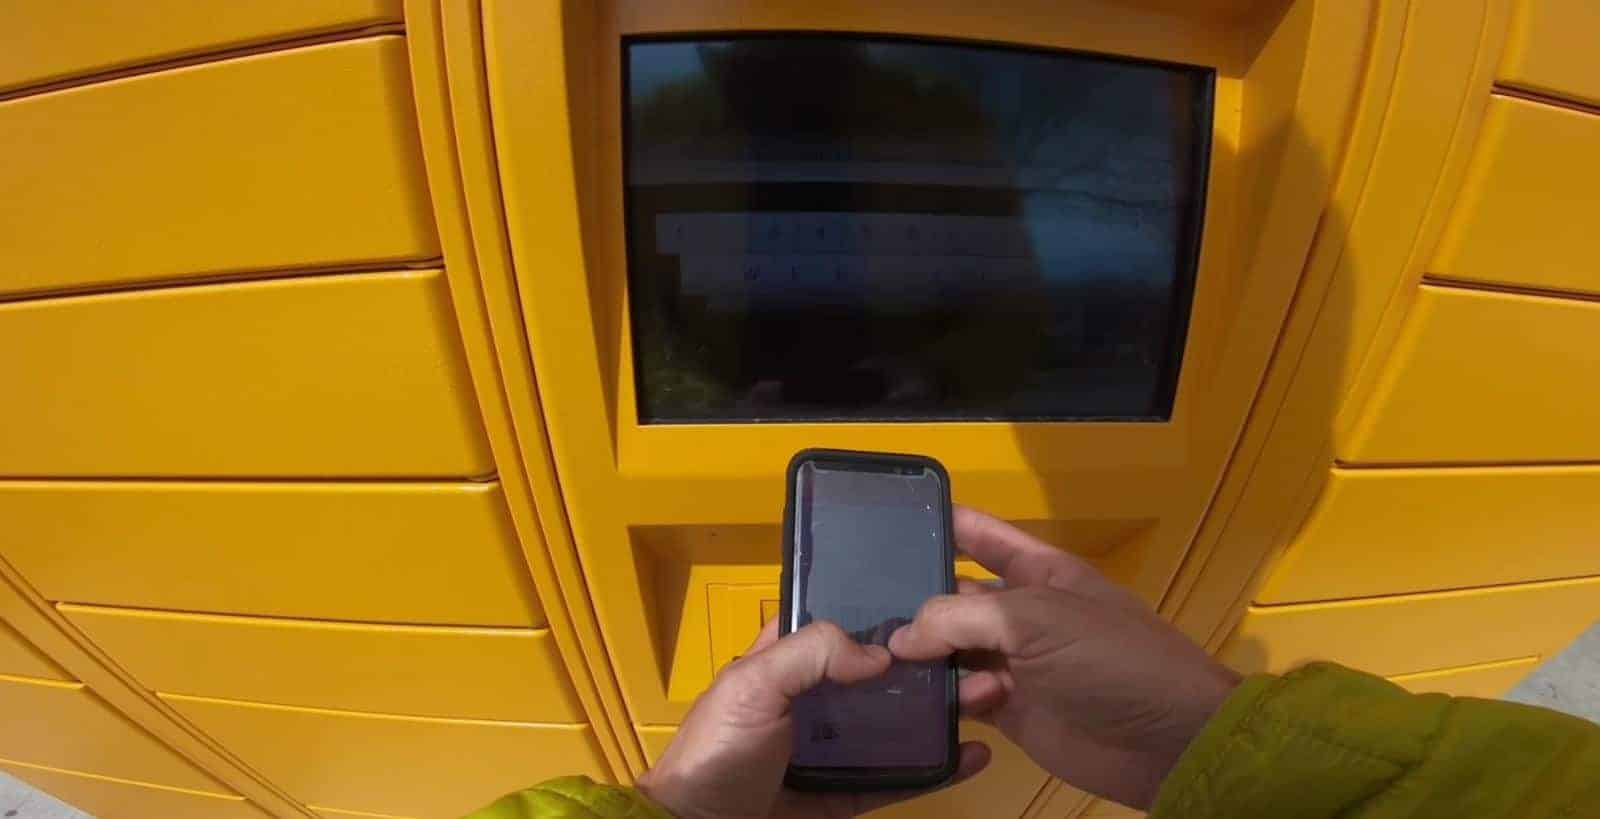 Amazon Locker - How to Get Mail While Traveling Full Time